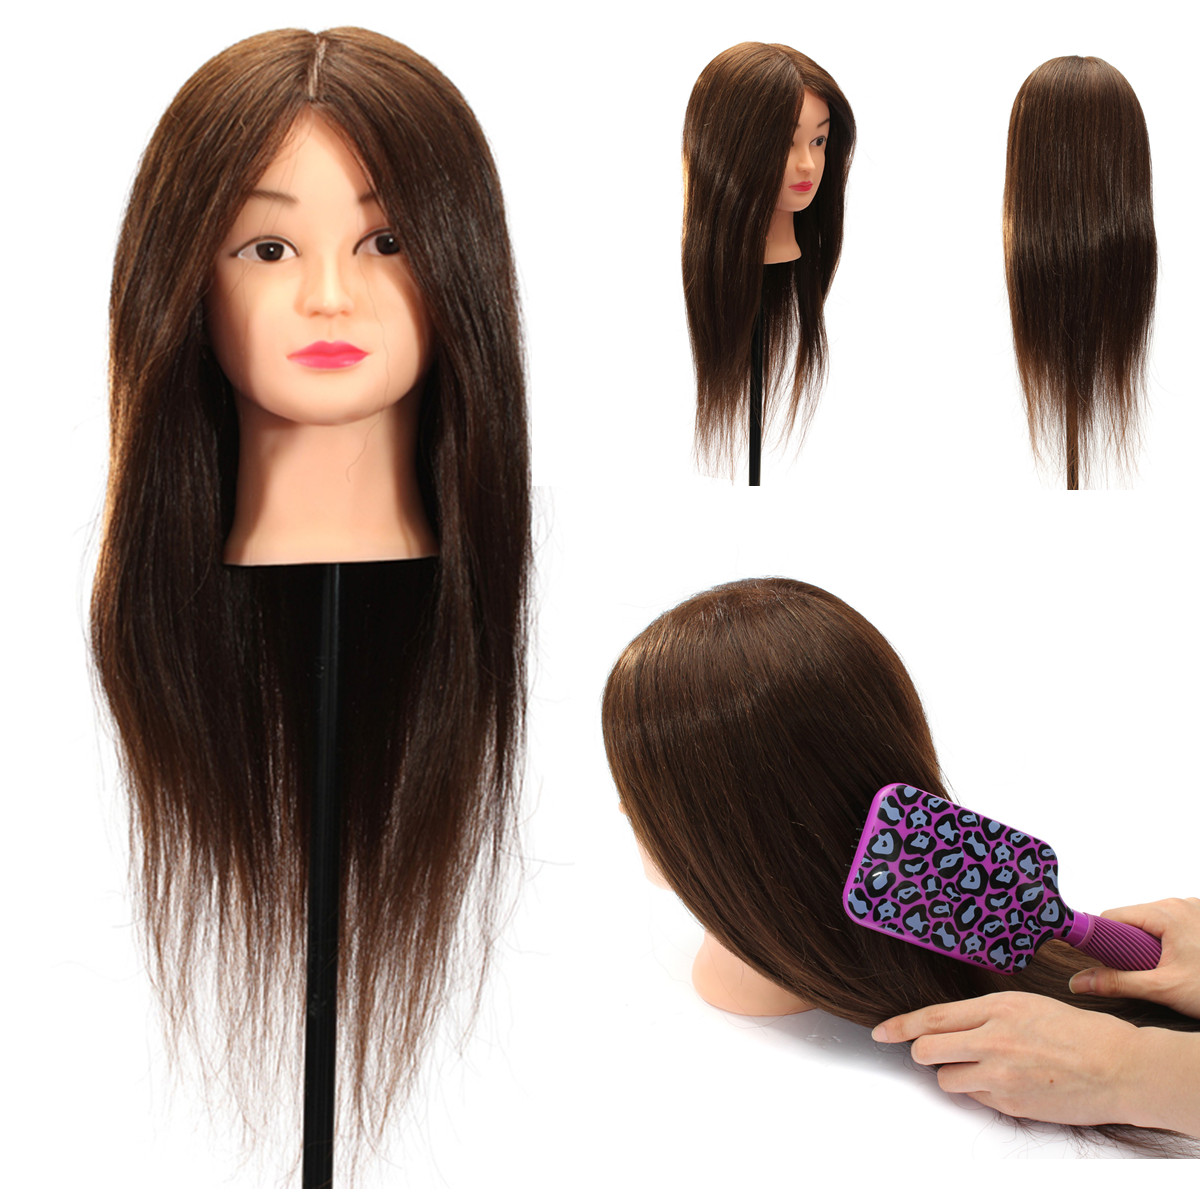 24 Quot 100 Real Human Hair Practice Head Training Mannequin